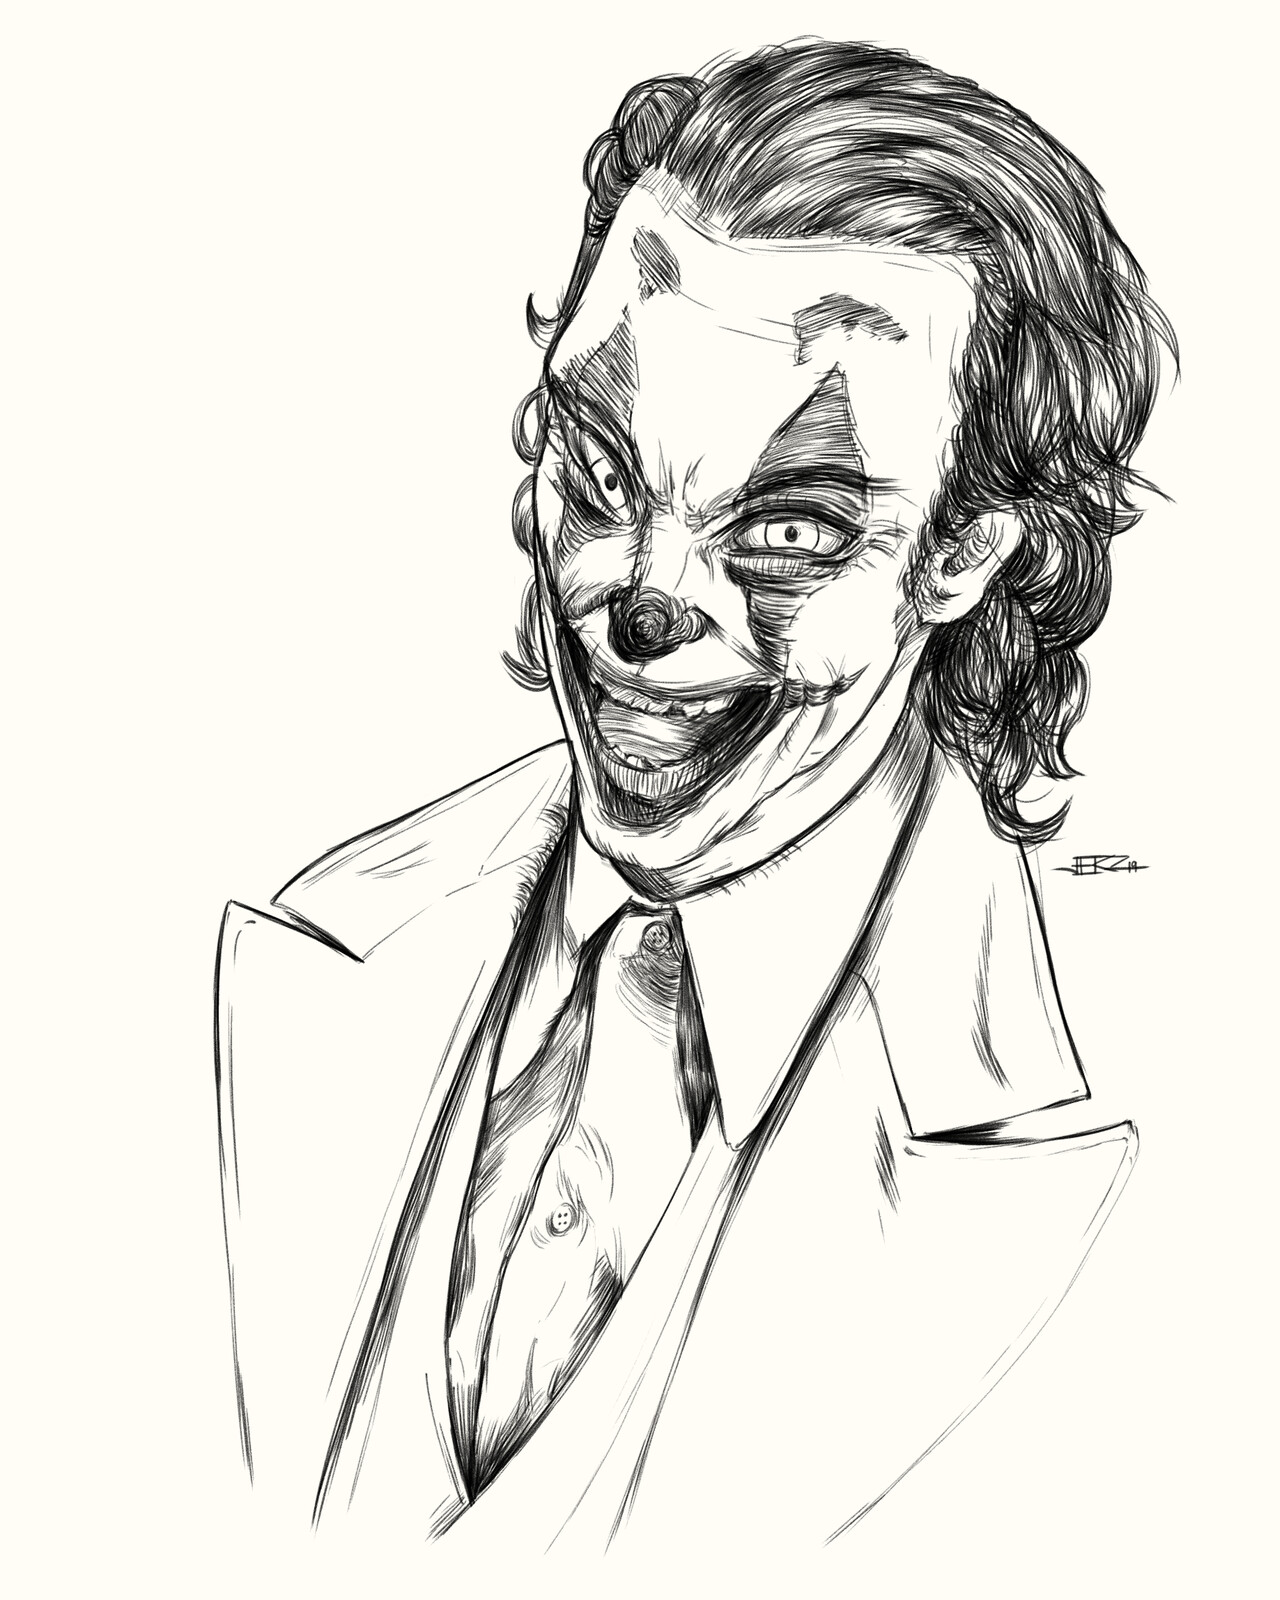 Inktober 2019 (Day 04/31) - Joker of DC Comics